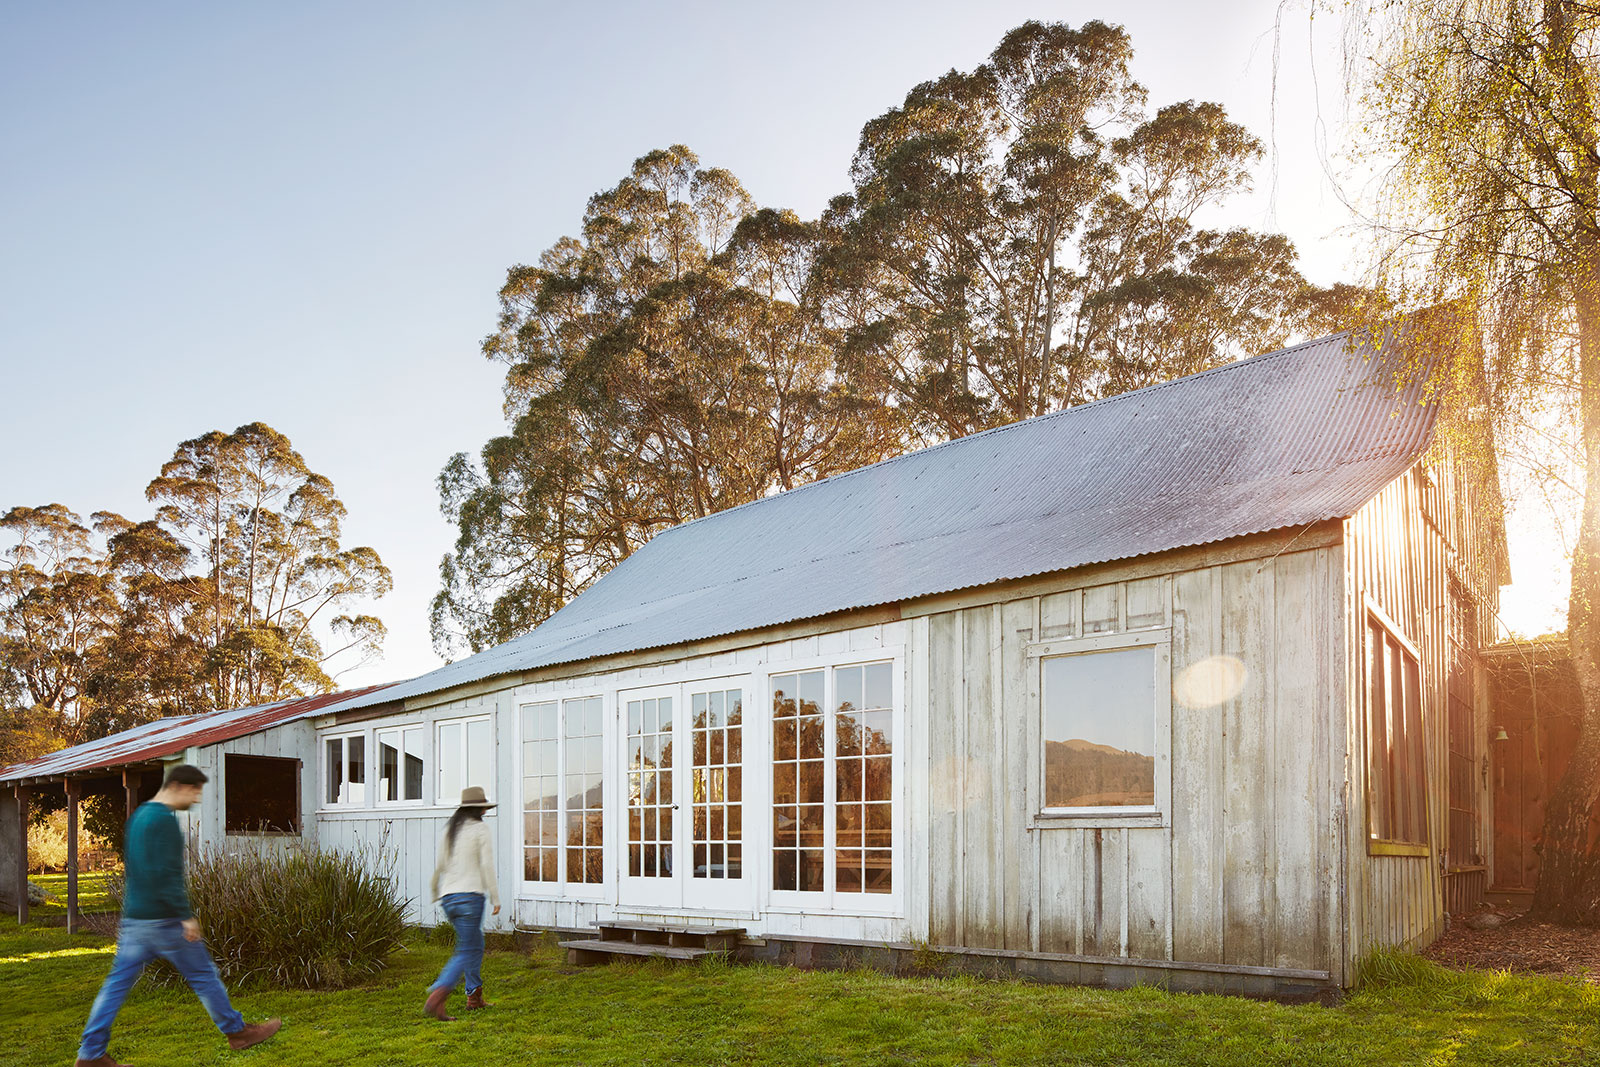 Barn home in Marin, CA  | Trinette+Chris Photographers